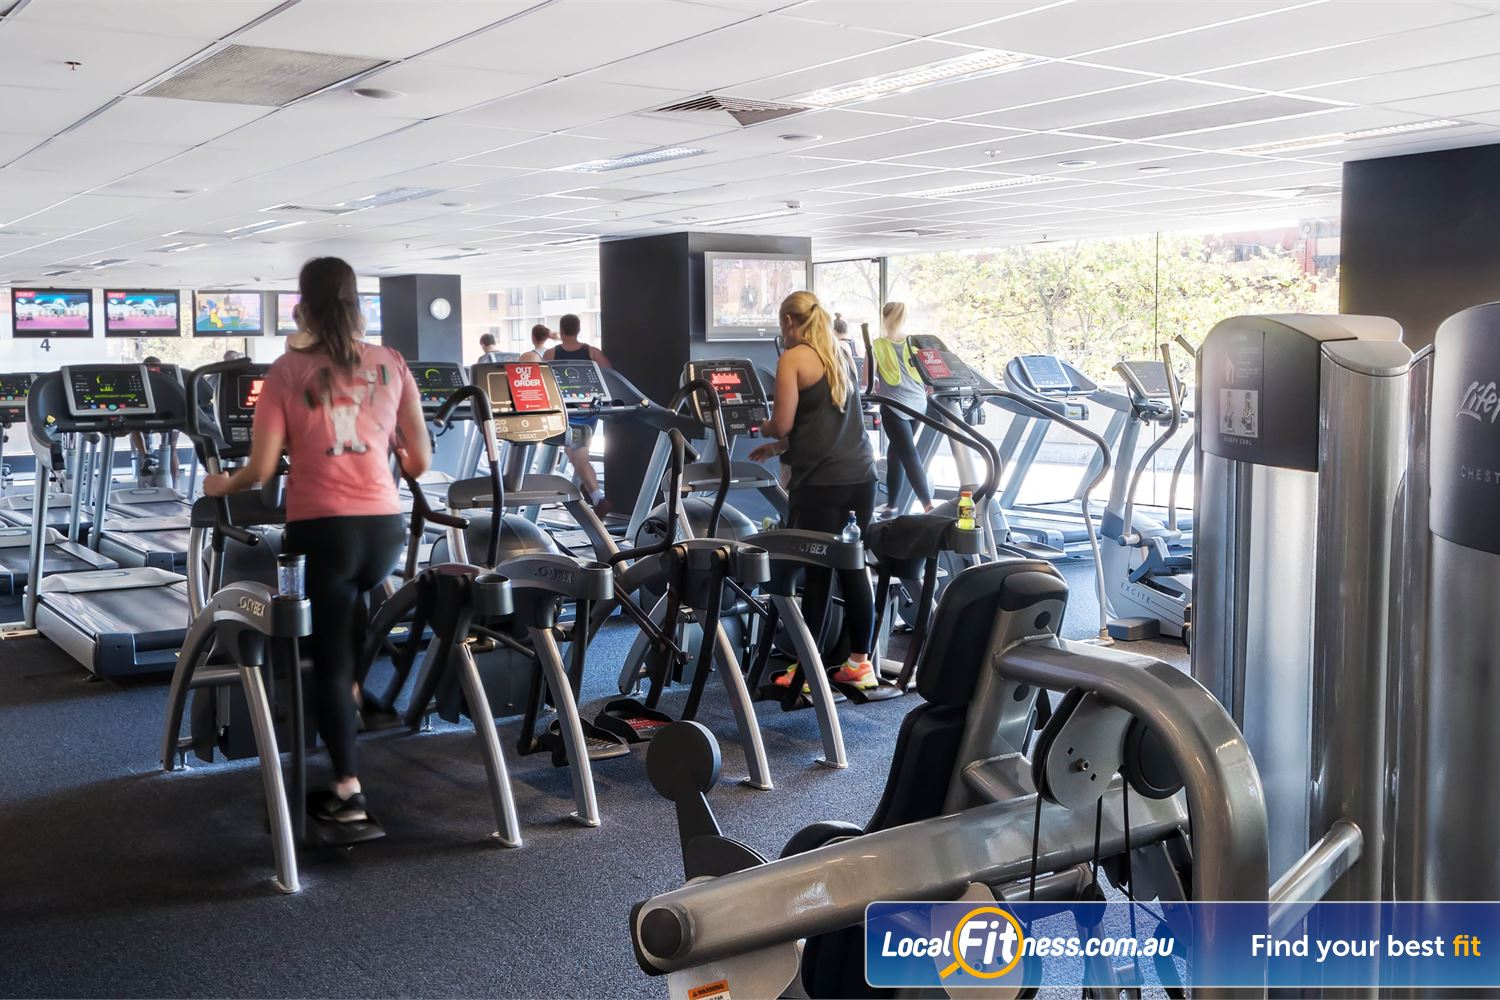 Fitness First Platinum Darlinghurst Treadmills, cross trainers, rowers and more in our cardio area.